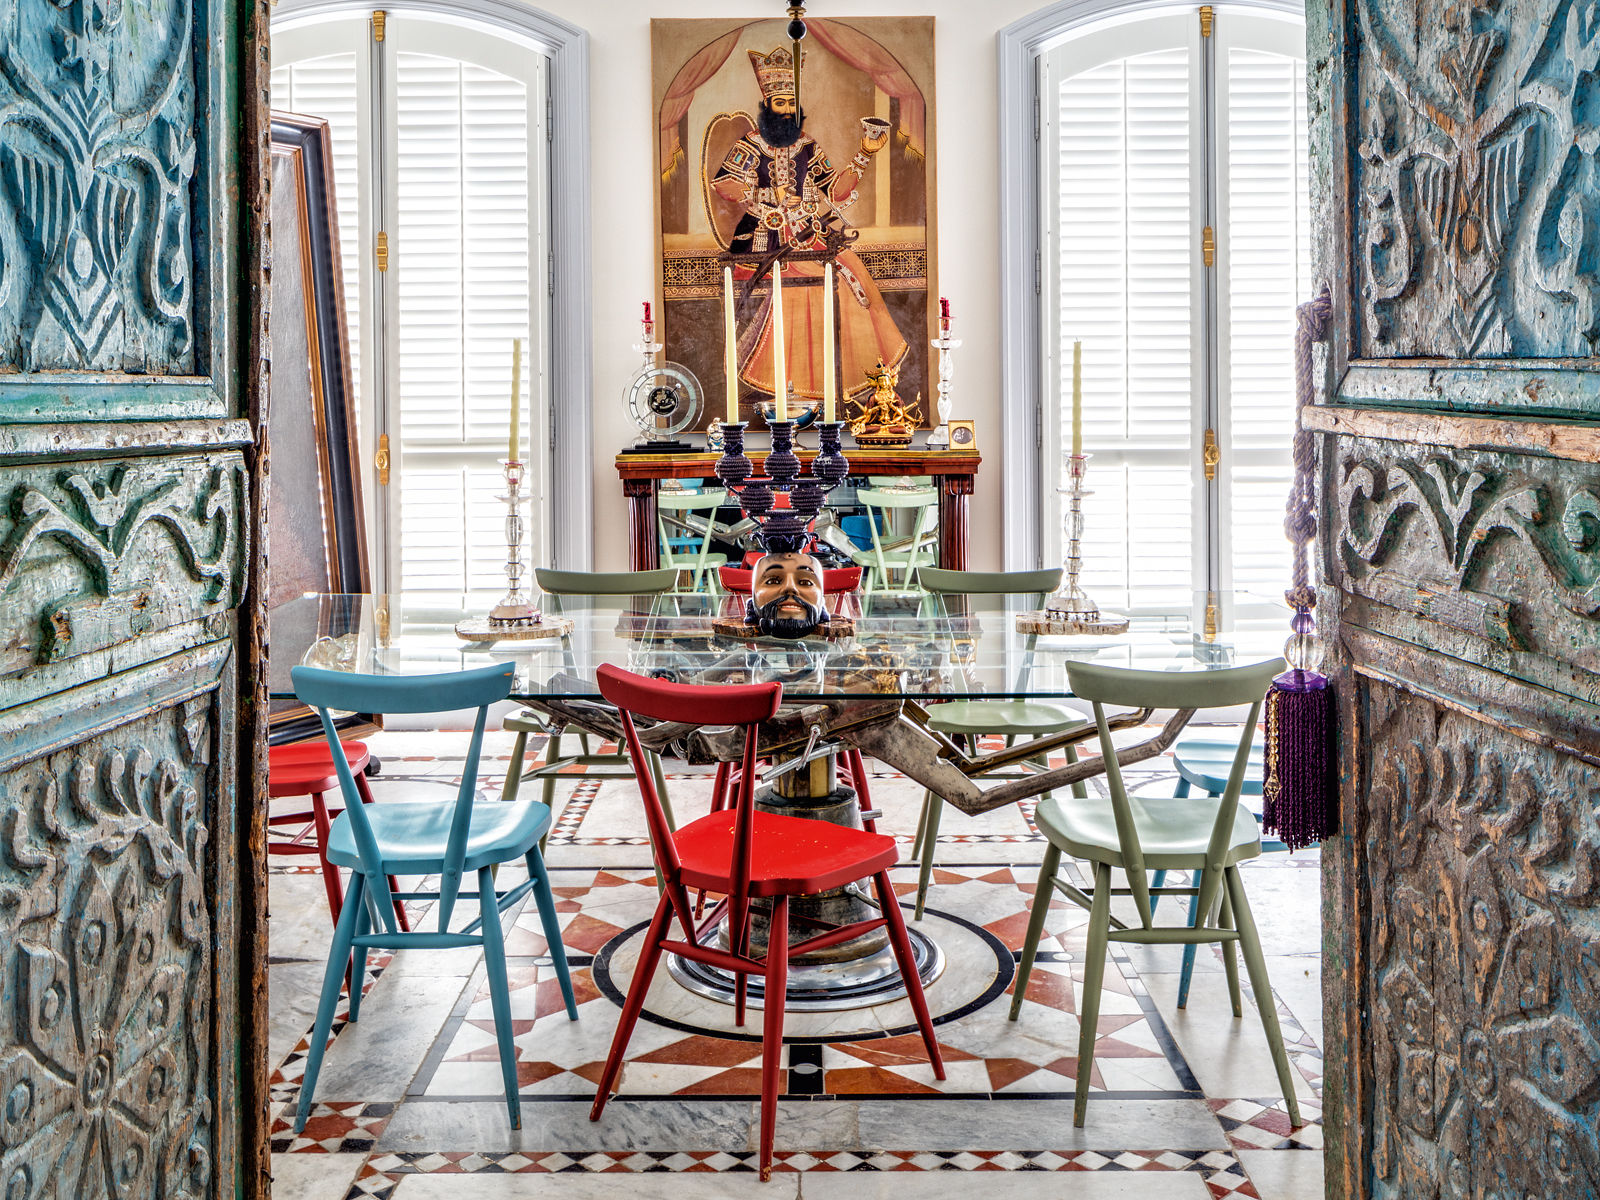 A Look into Christian Louboutin's Paris Penthouse dining room Dining room lighting ideas for a luxury interior Louboutin thumbnail dining room Dining room lighting ideas for a luxury interior Louboutin thumbnail